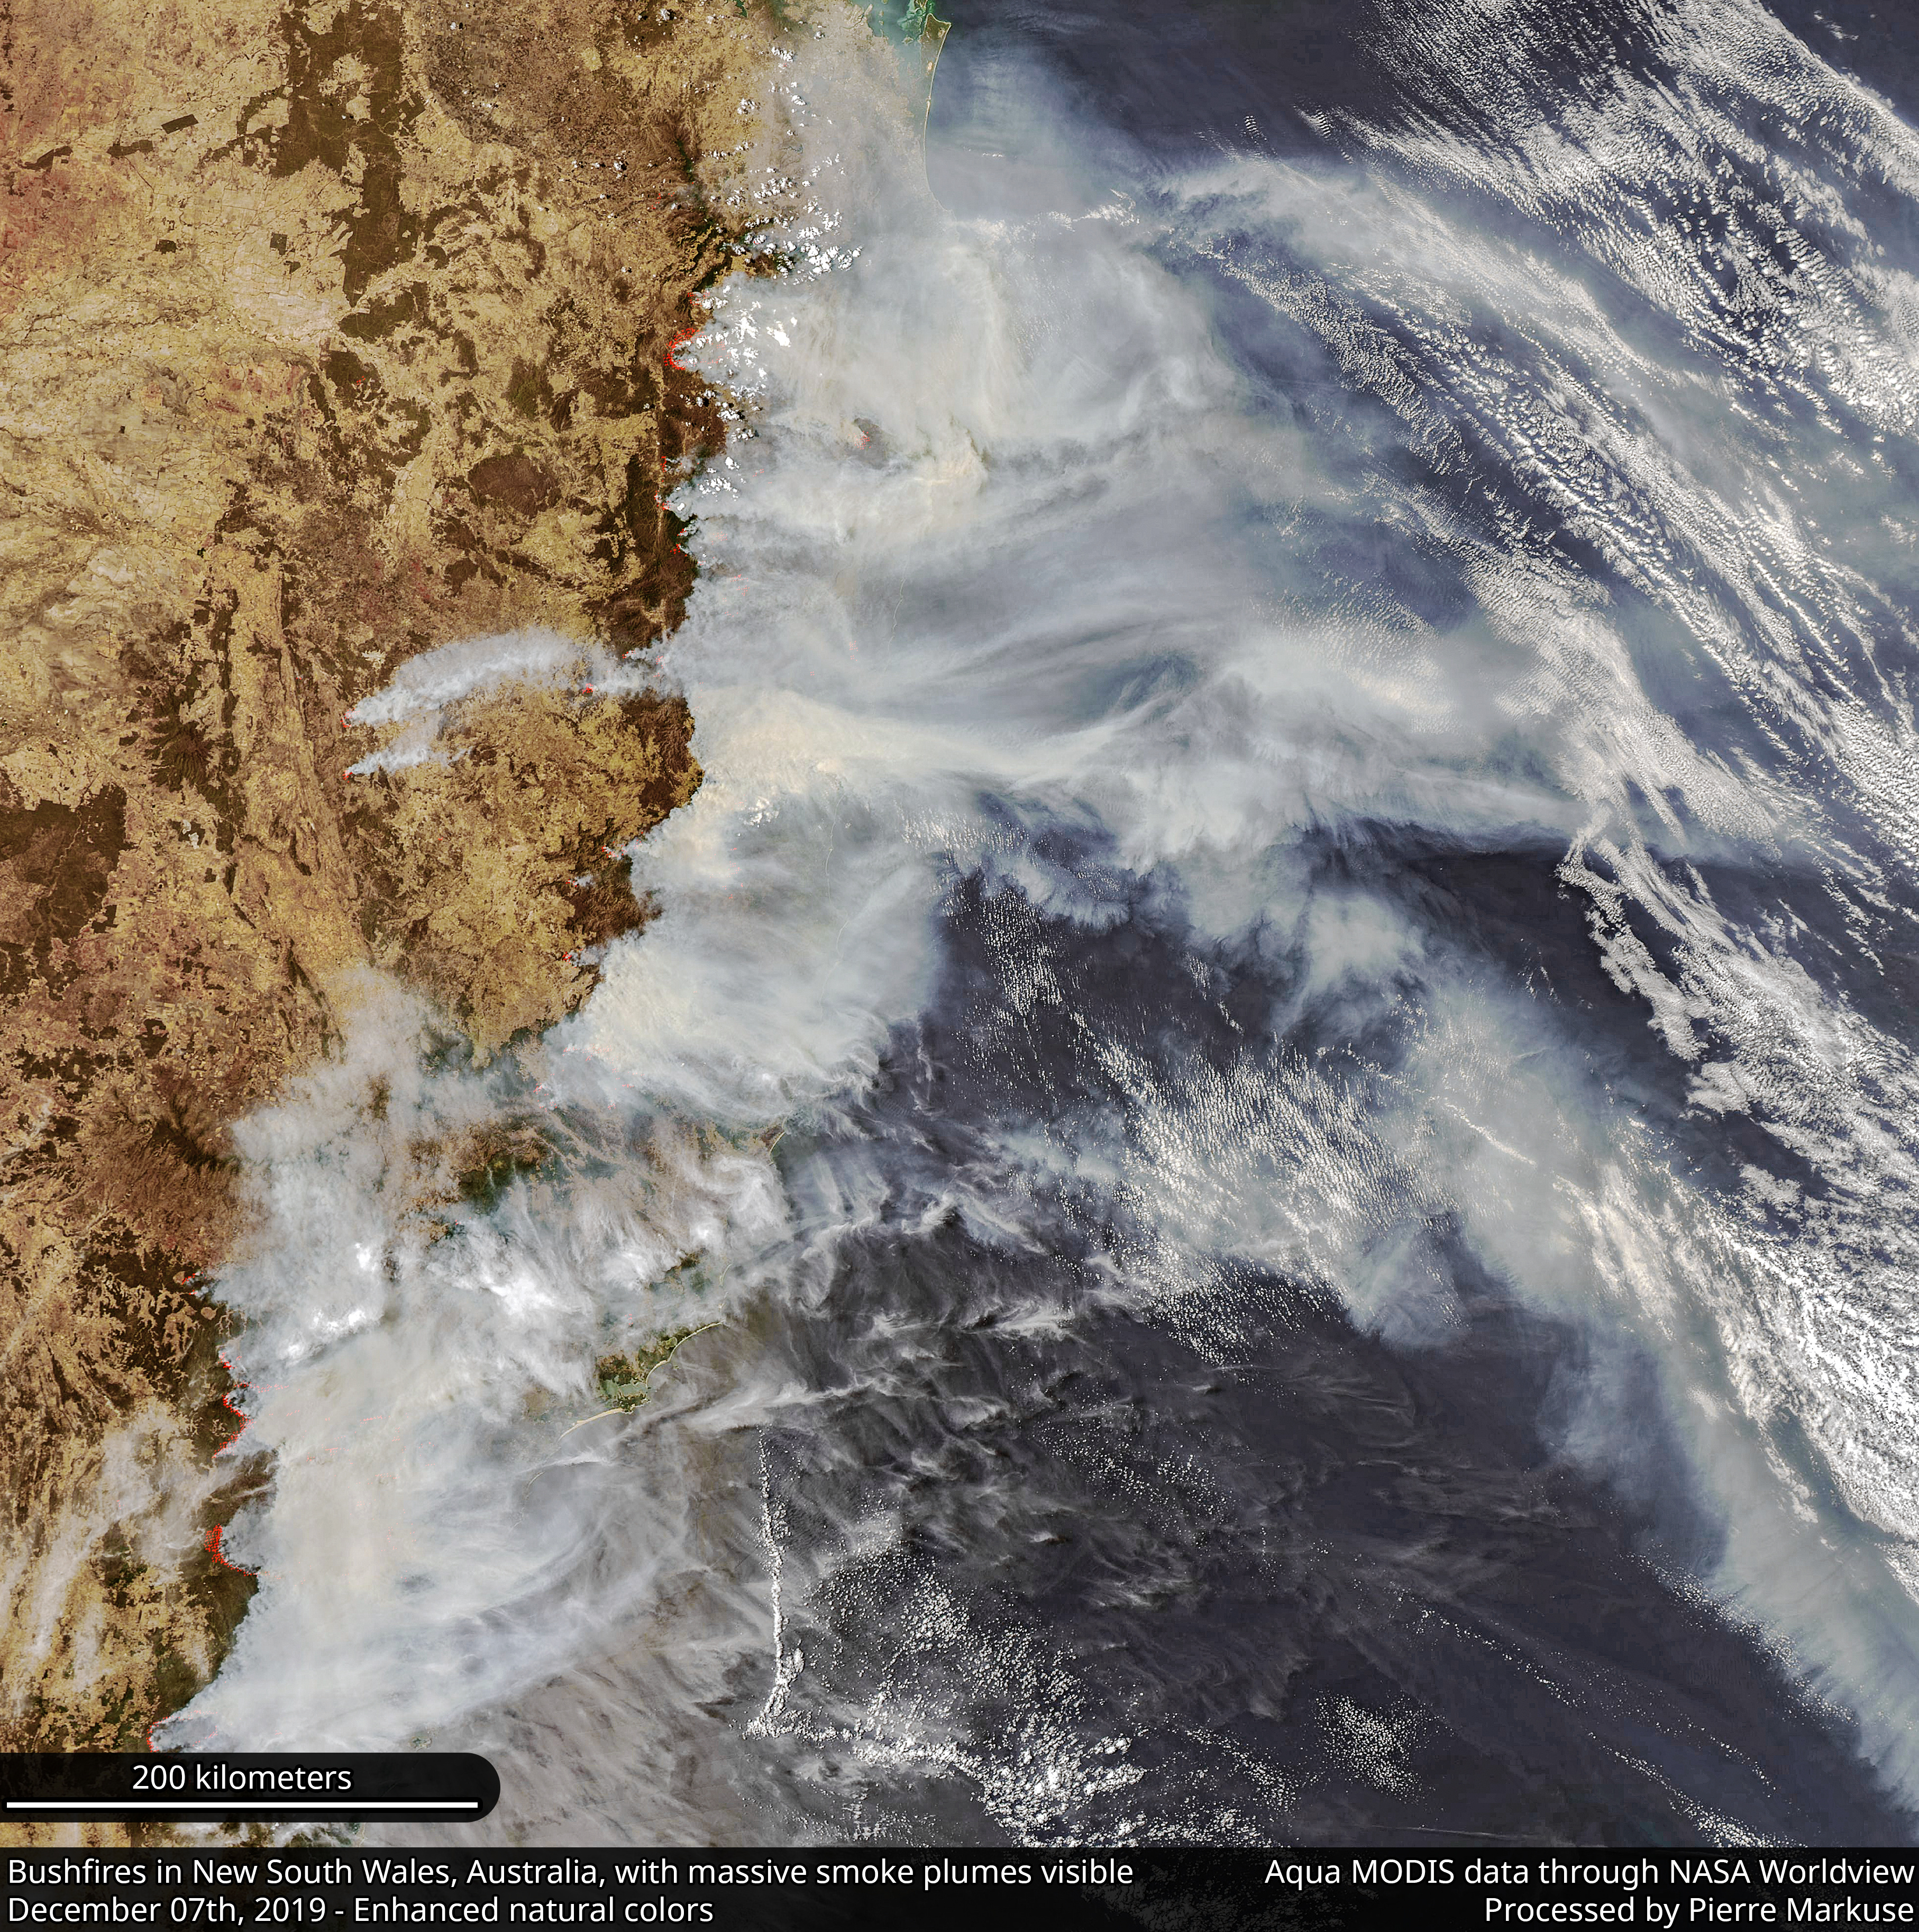 Bushfires in New South Wales, Australia, with massive smoke plumes visible - December 7th, 2019